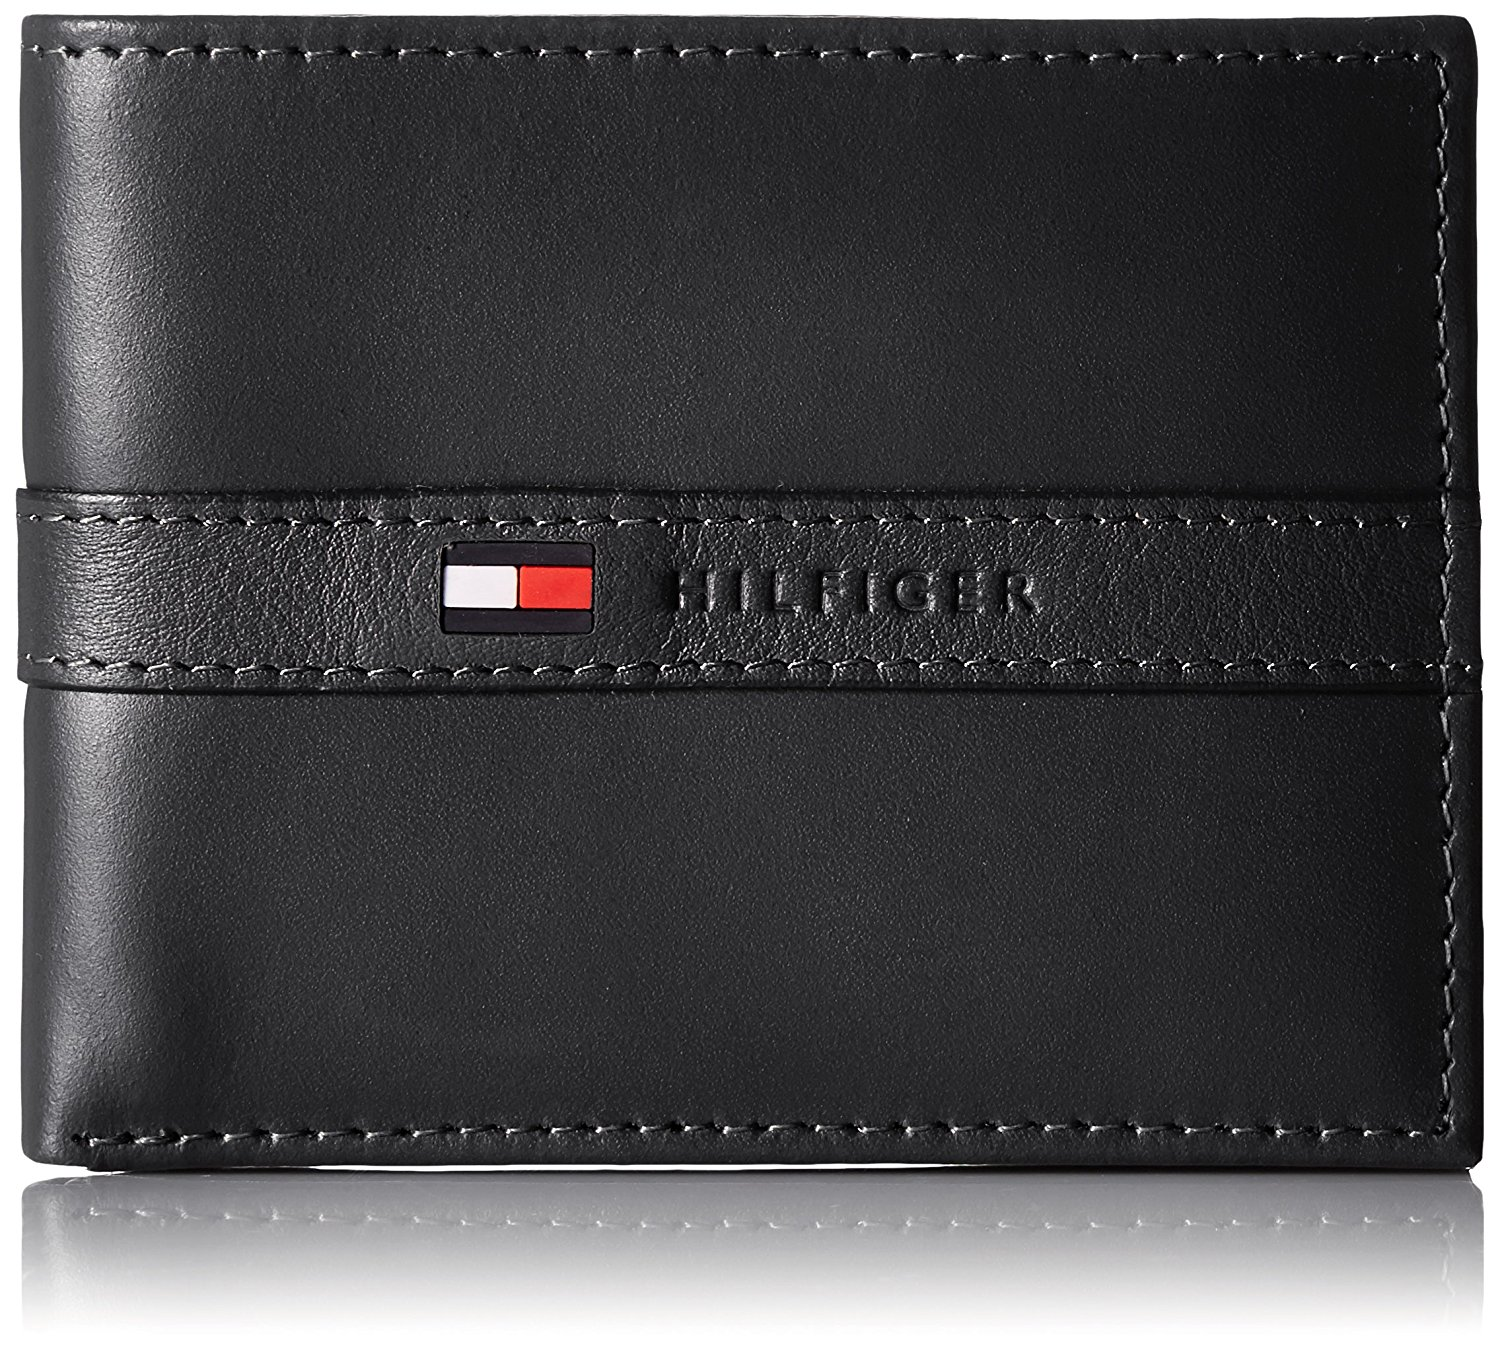 917241e36670 Tommy Hilfiger Men s Ranger Leather Passcase Wallet with Removable Card  Holder